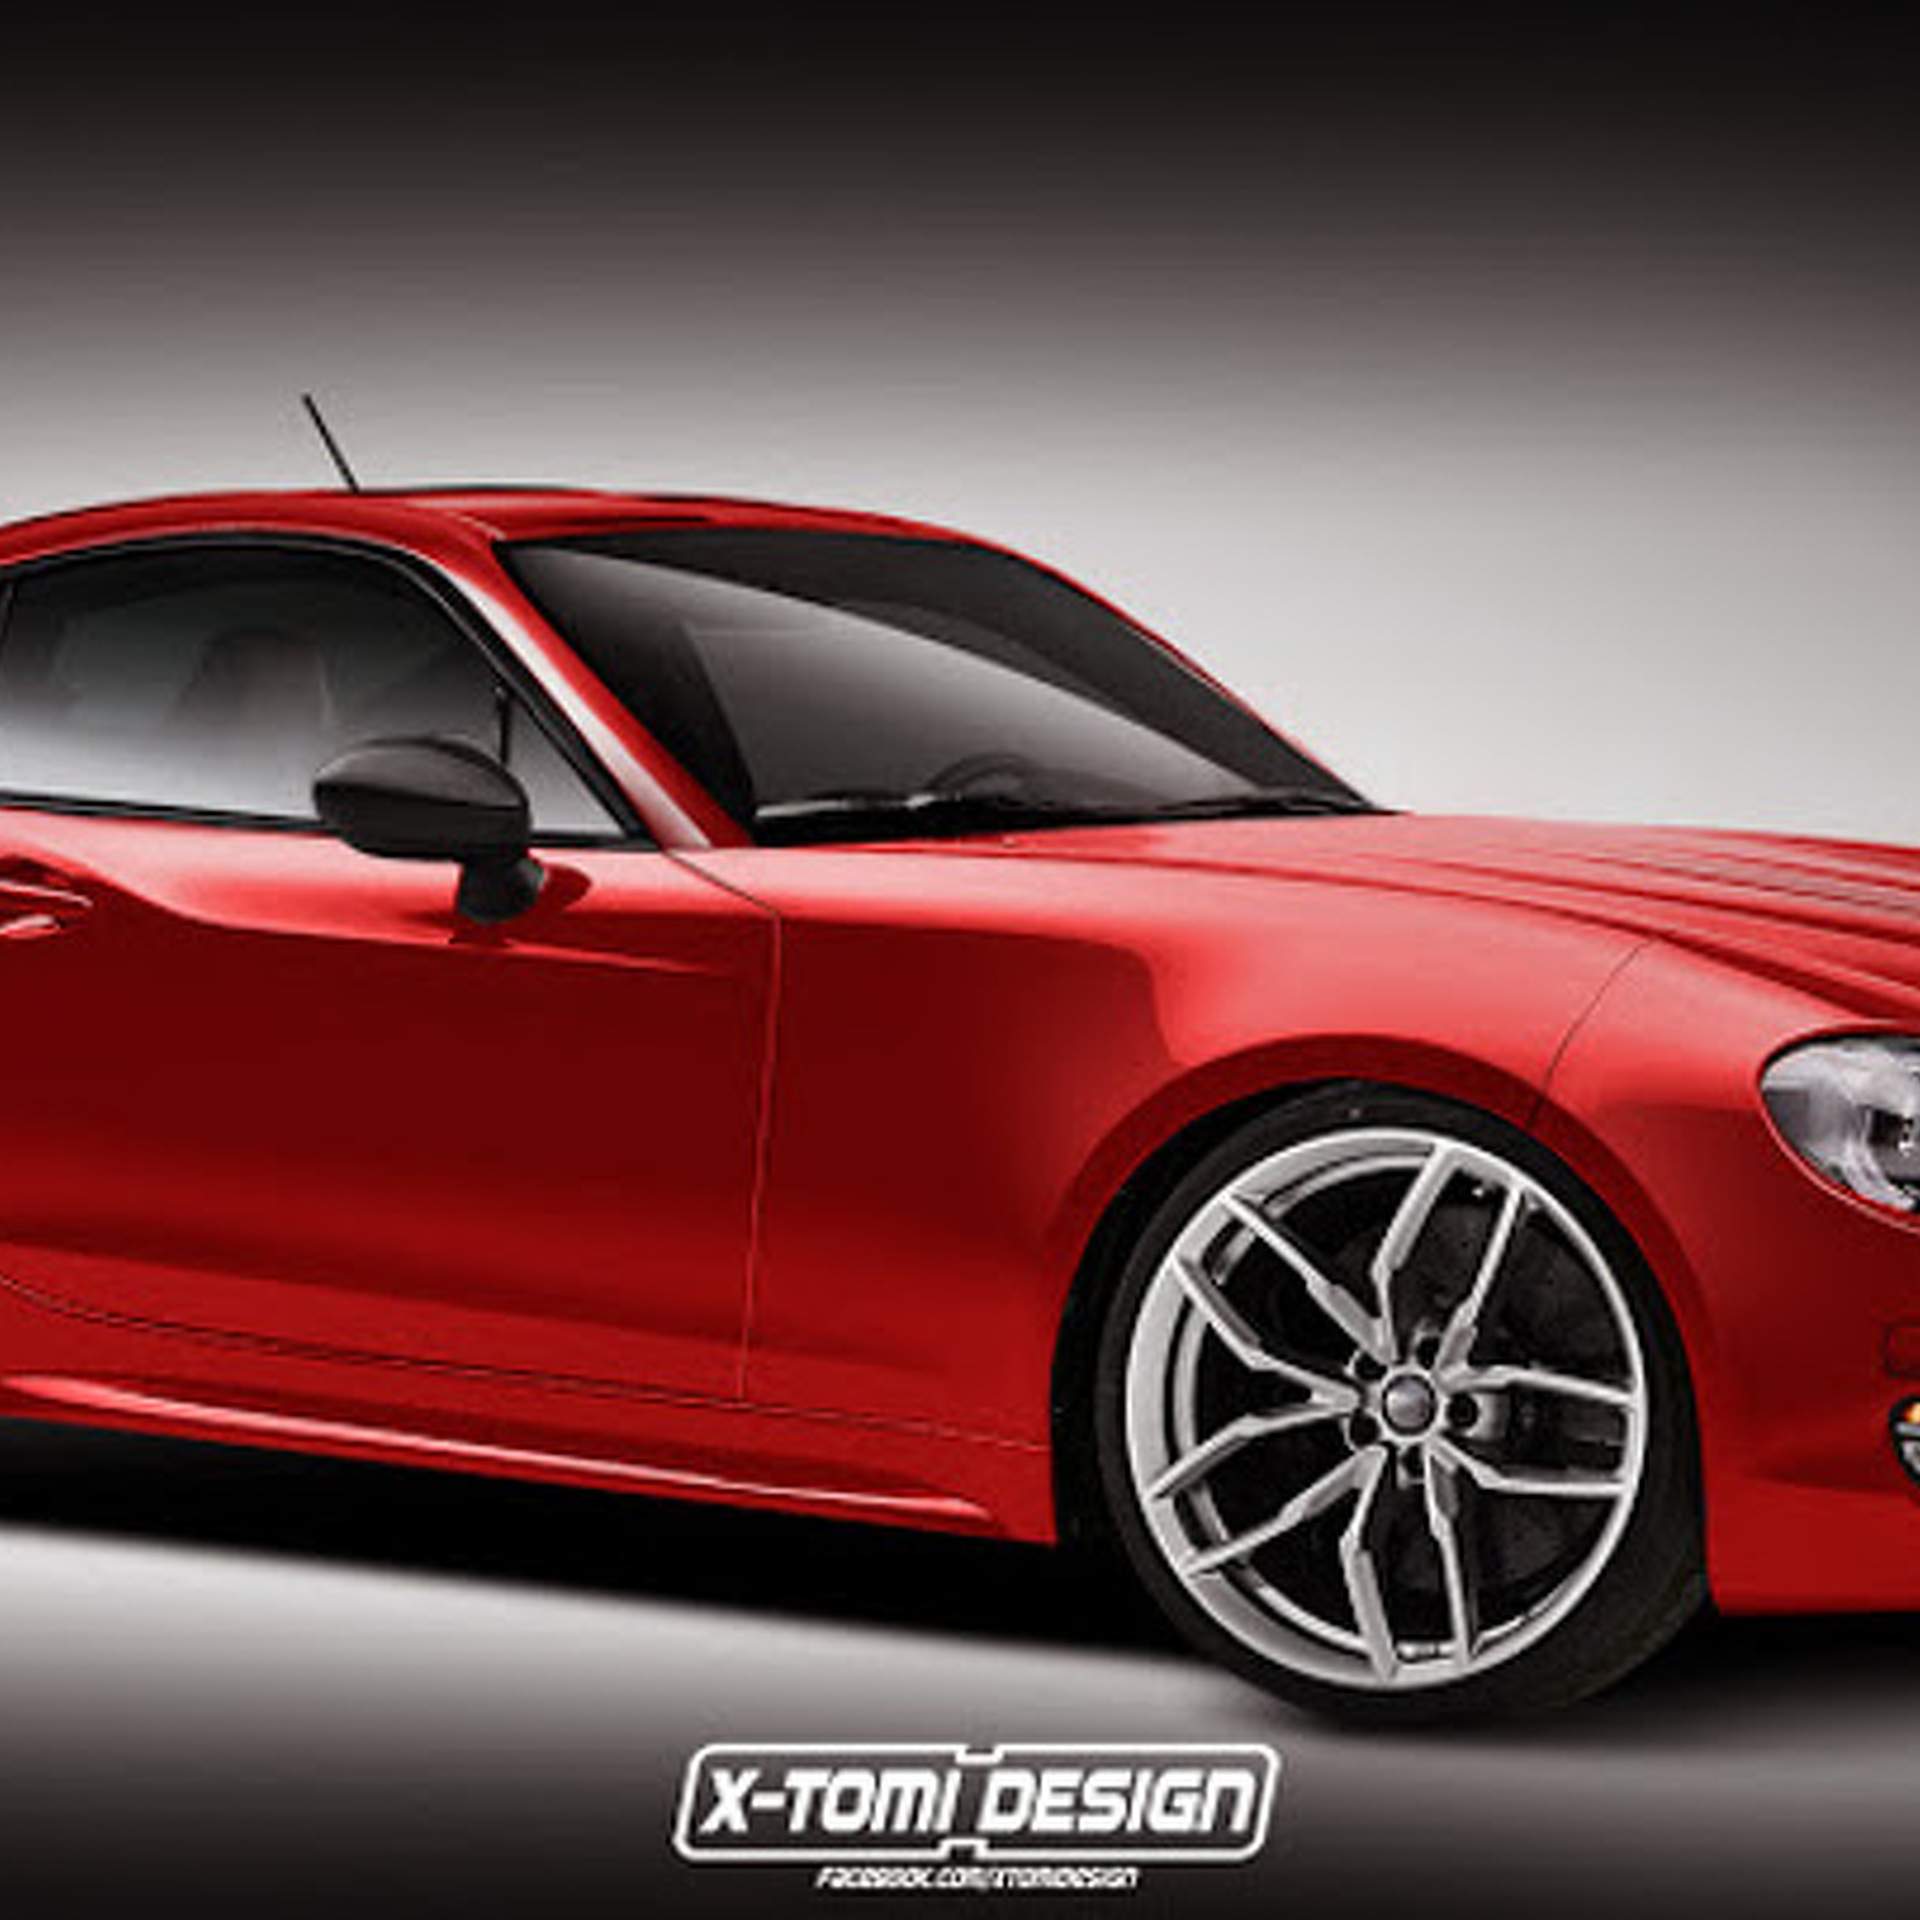 New Fiat 124 Spider Reimagined as a Datsun 240Z Coupe